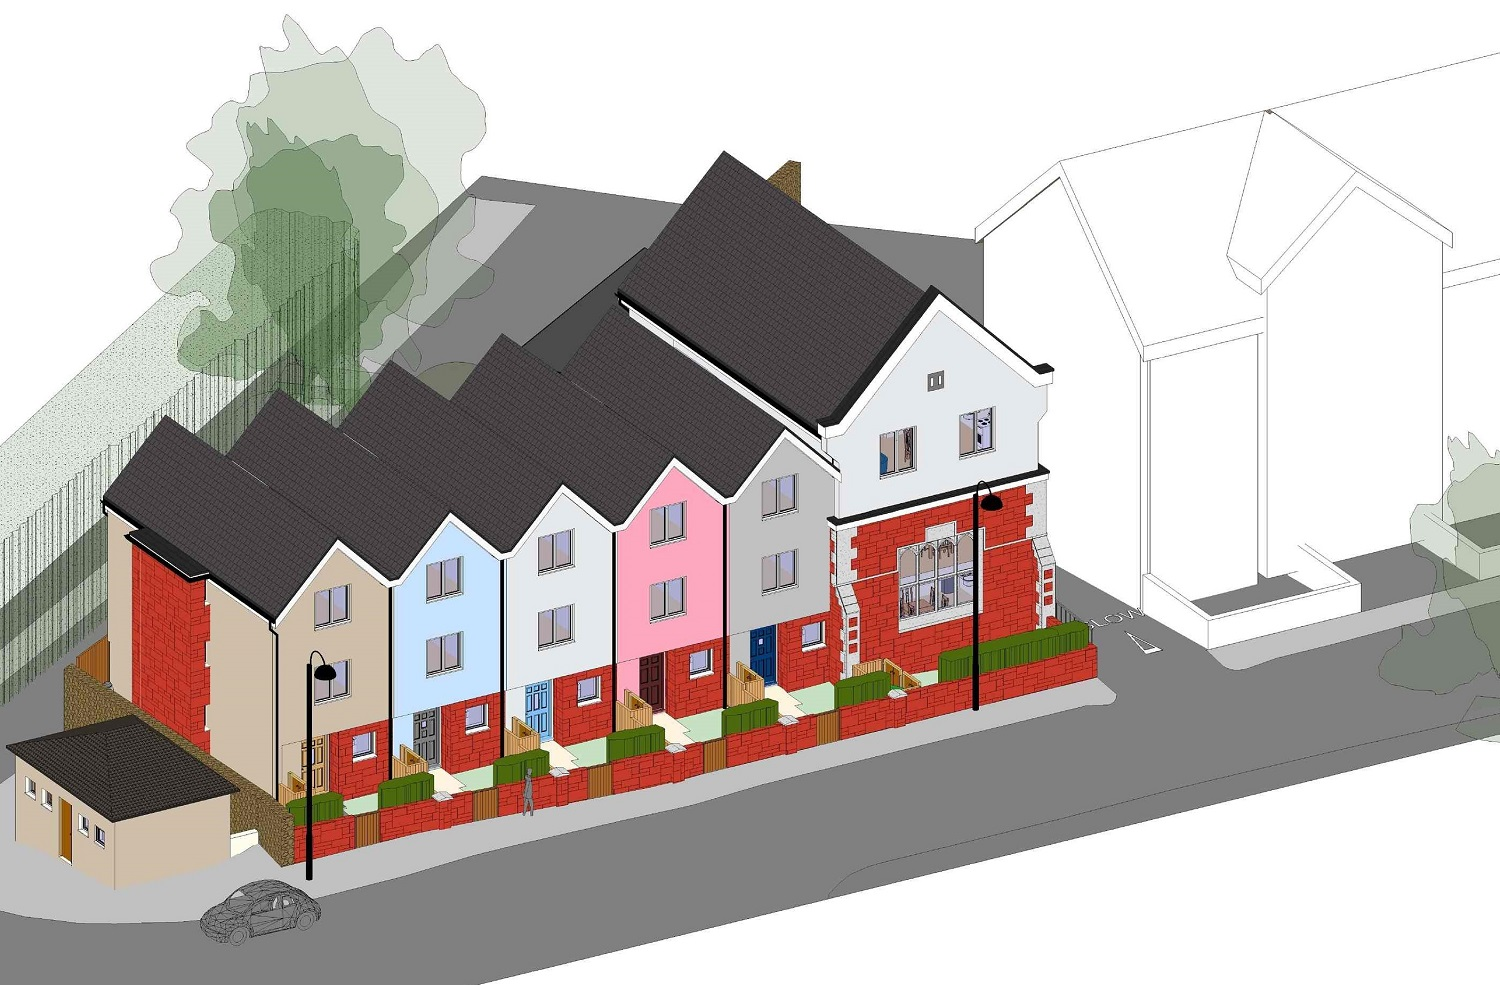 5 NEW HOUSES & 3 FLATS IN CONSERVATION AREA - Shirehampton, Station Road